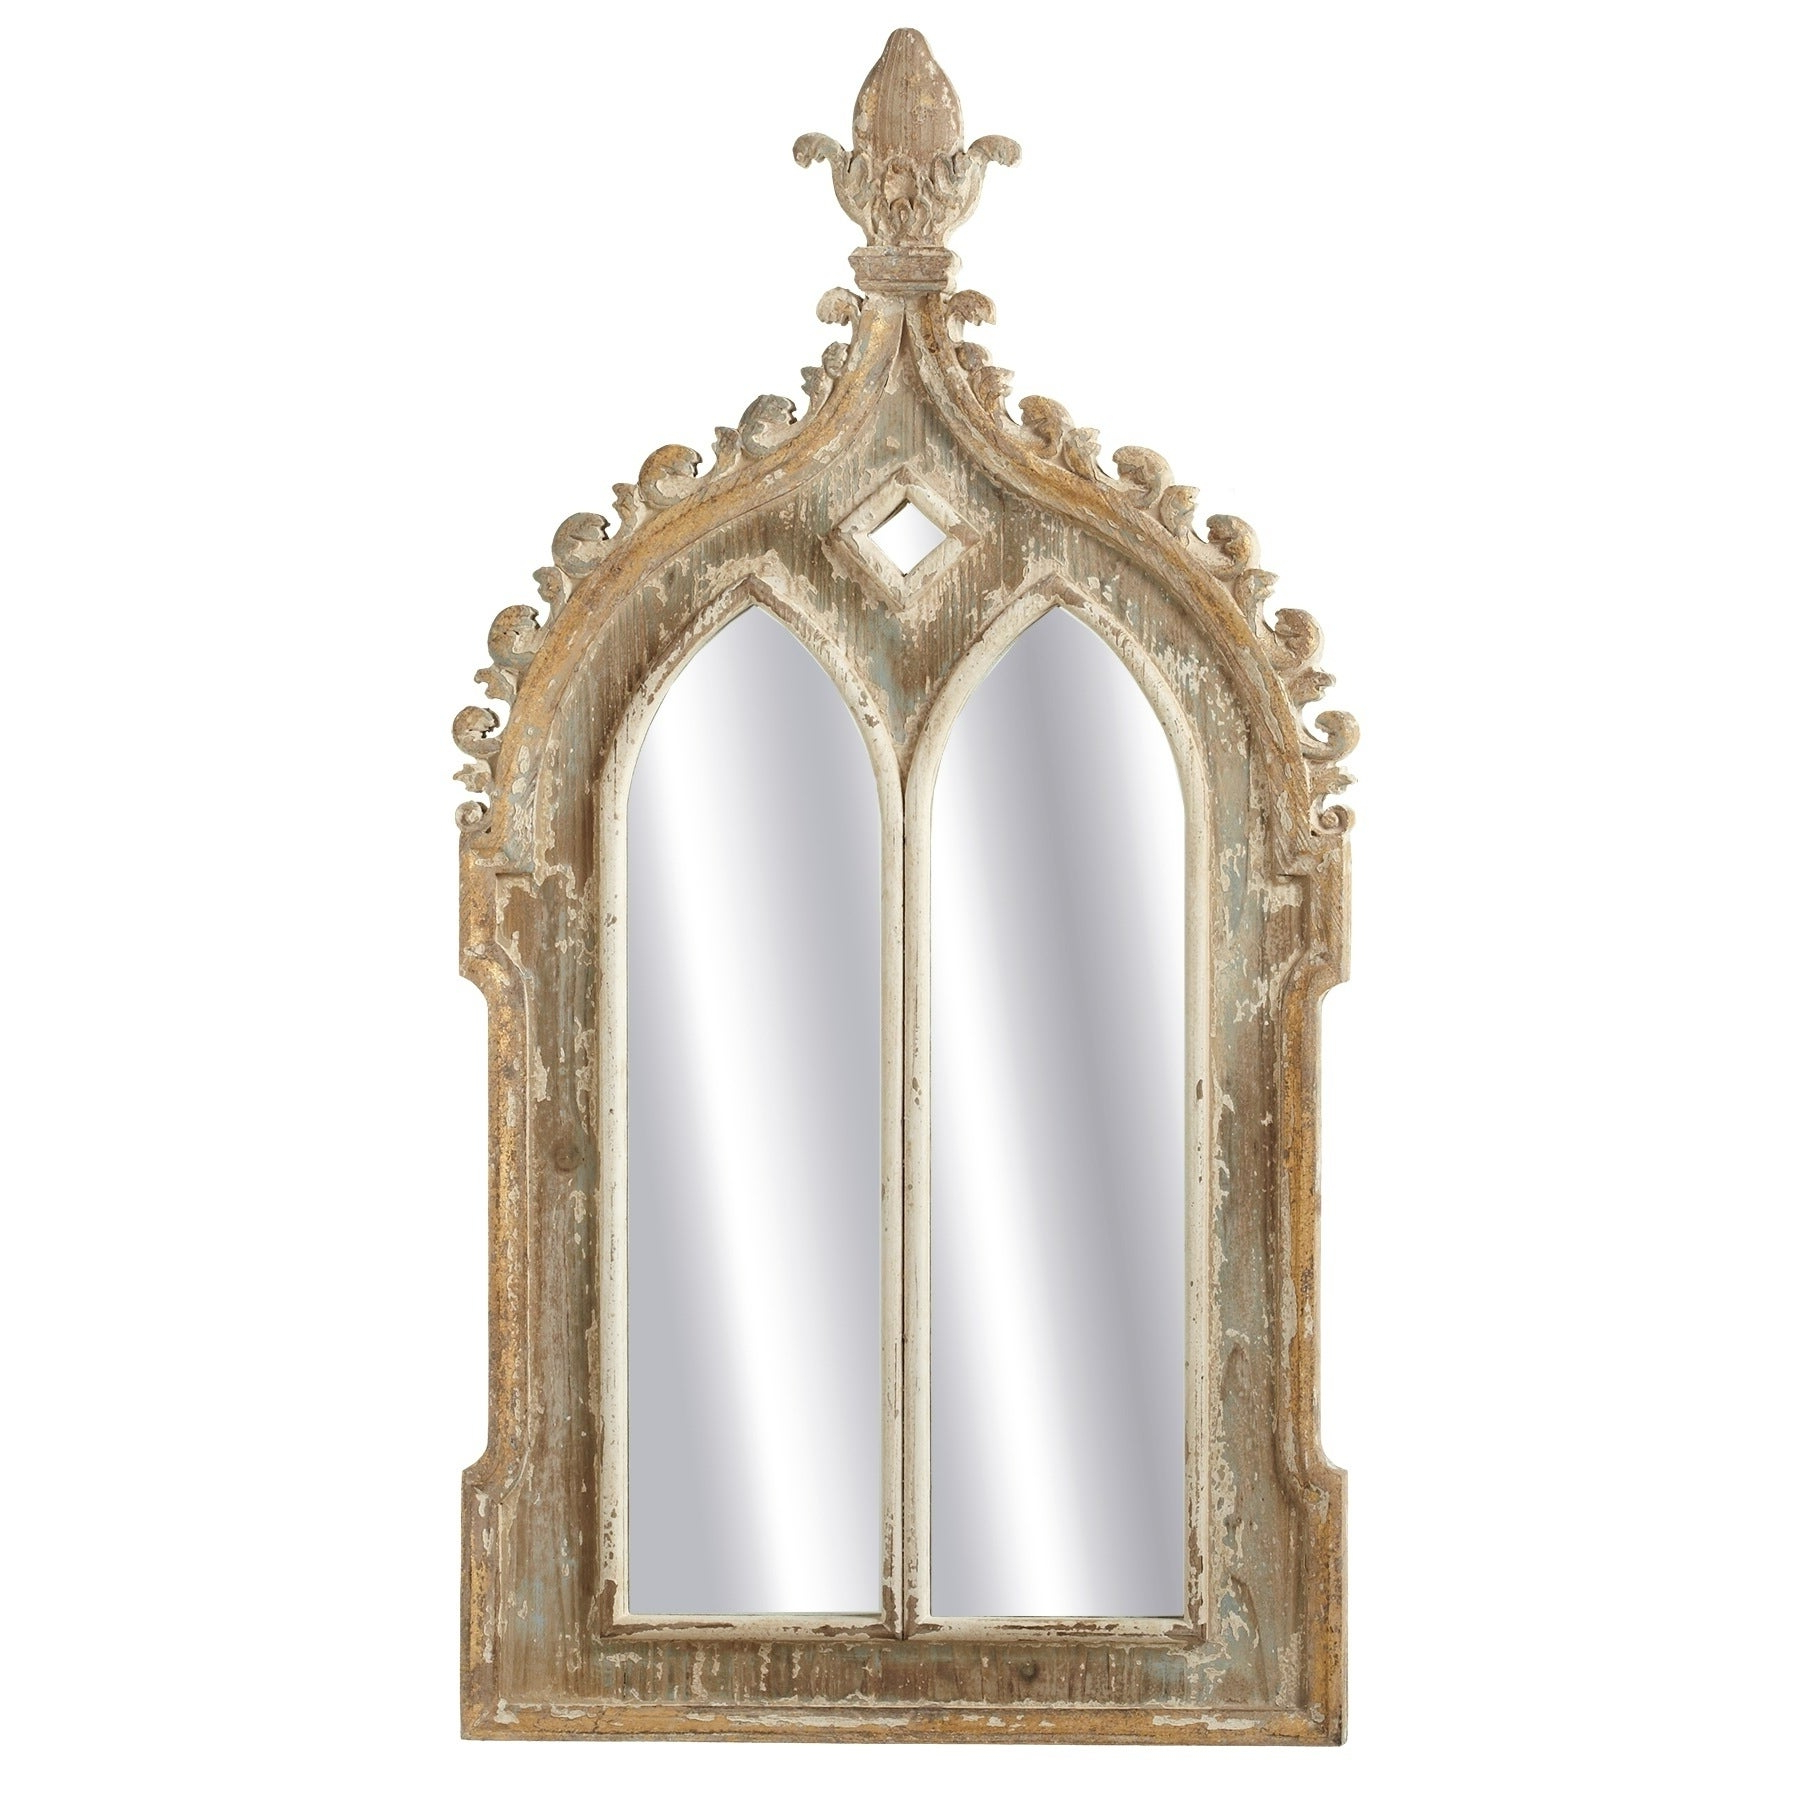 Trendy Gold Arch Wall Mirrors Inside Midwest Cbk Gold Framed Double Arch Wall Mirror (View 16 of 20)